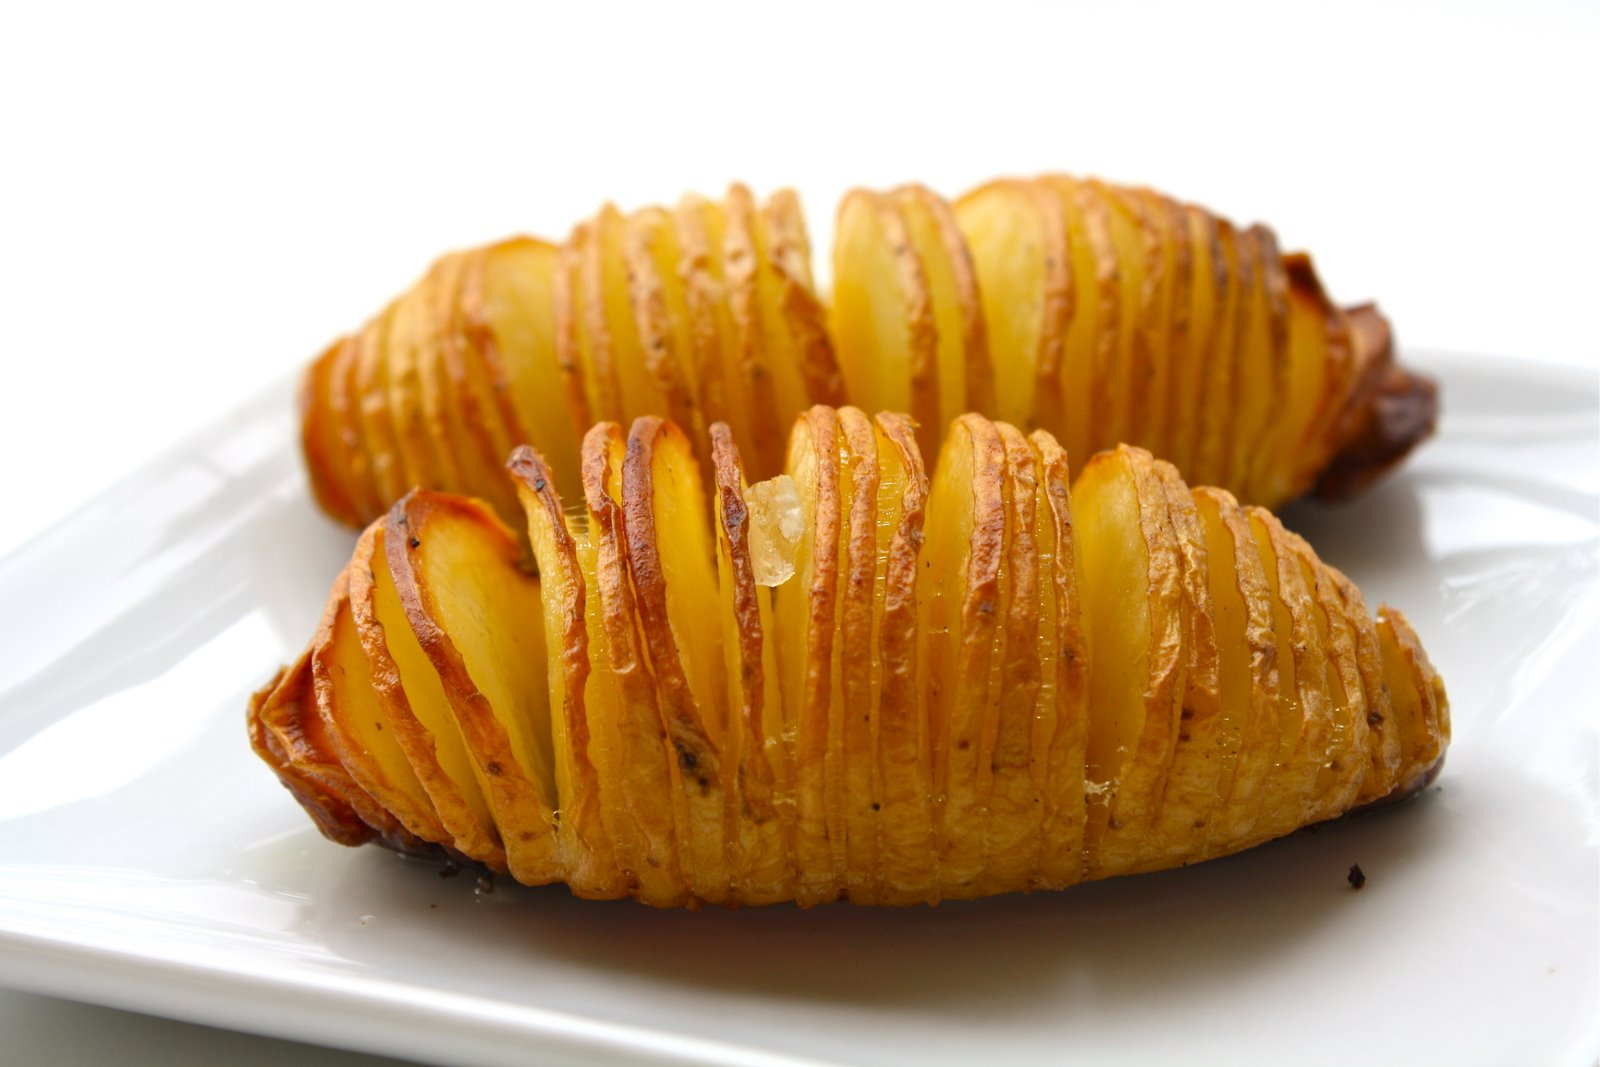 Mommy's Pots and Pans: Baked Potato with a Twist